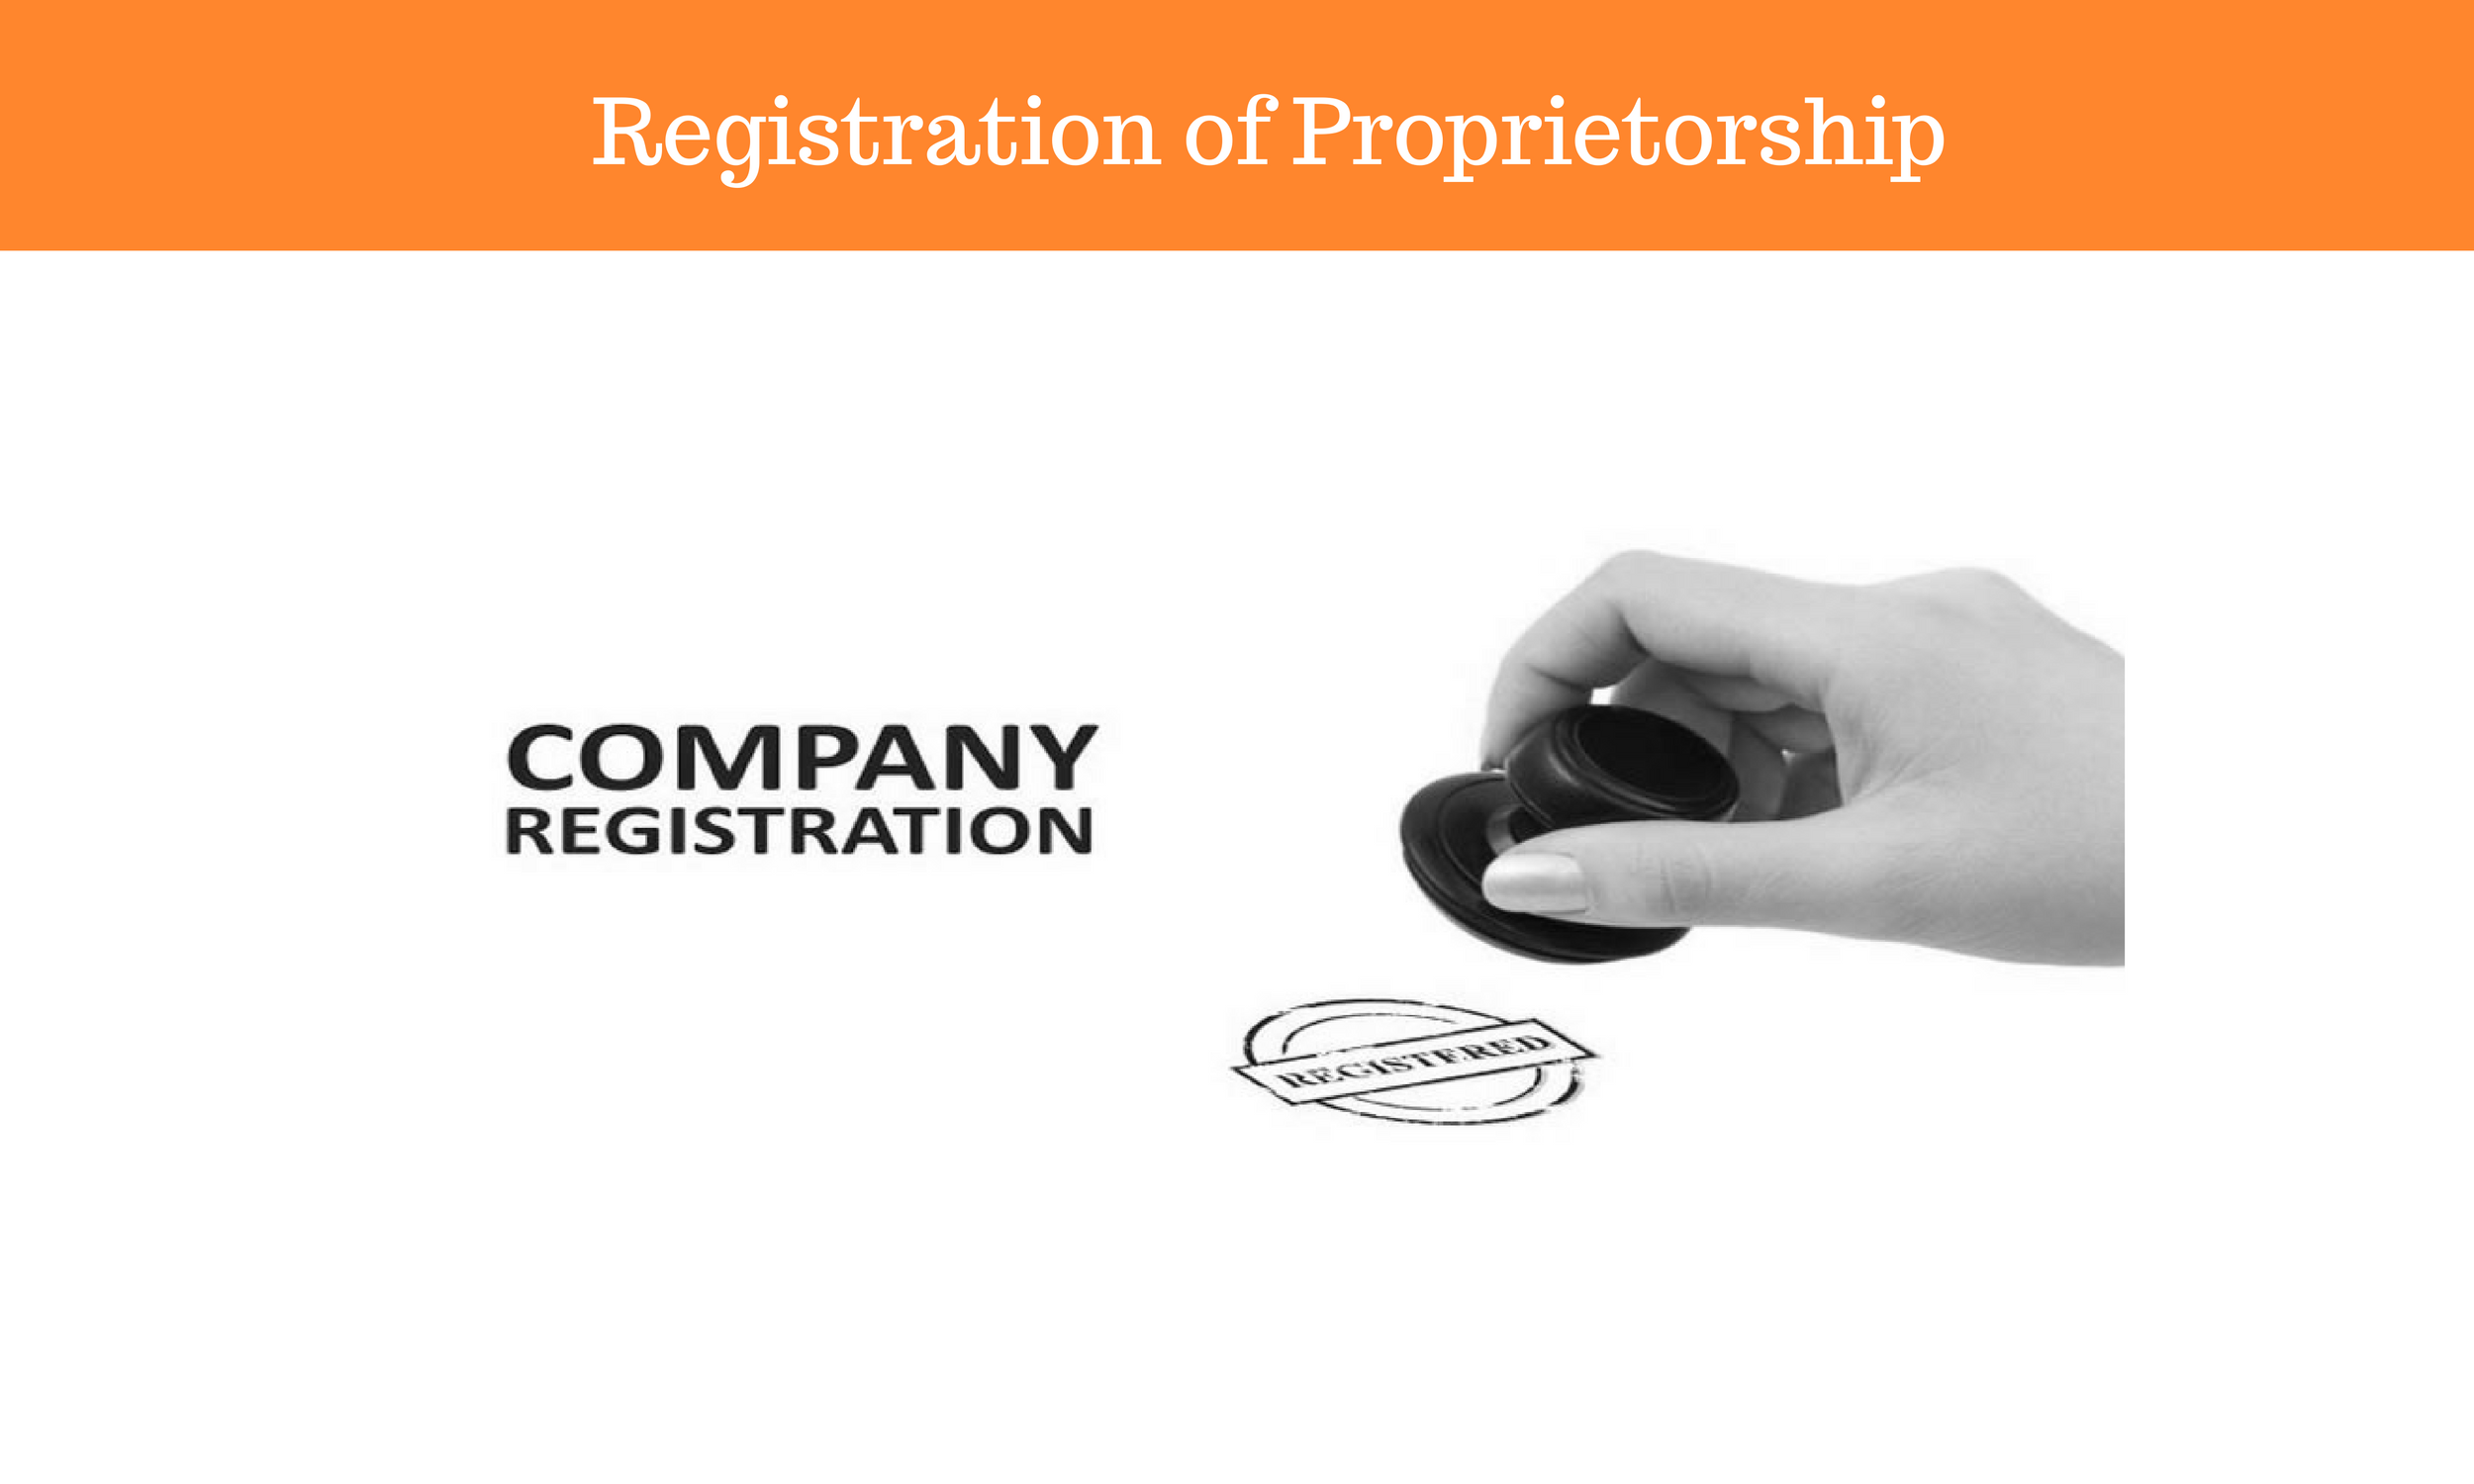 Get Your Proprietorship Registered